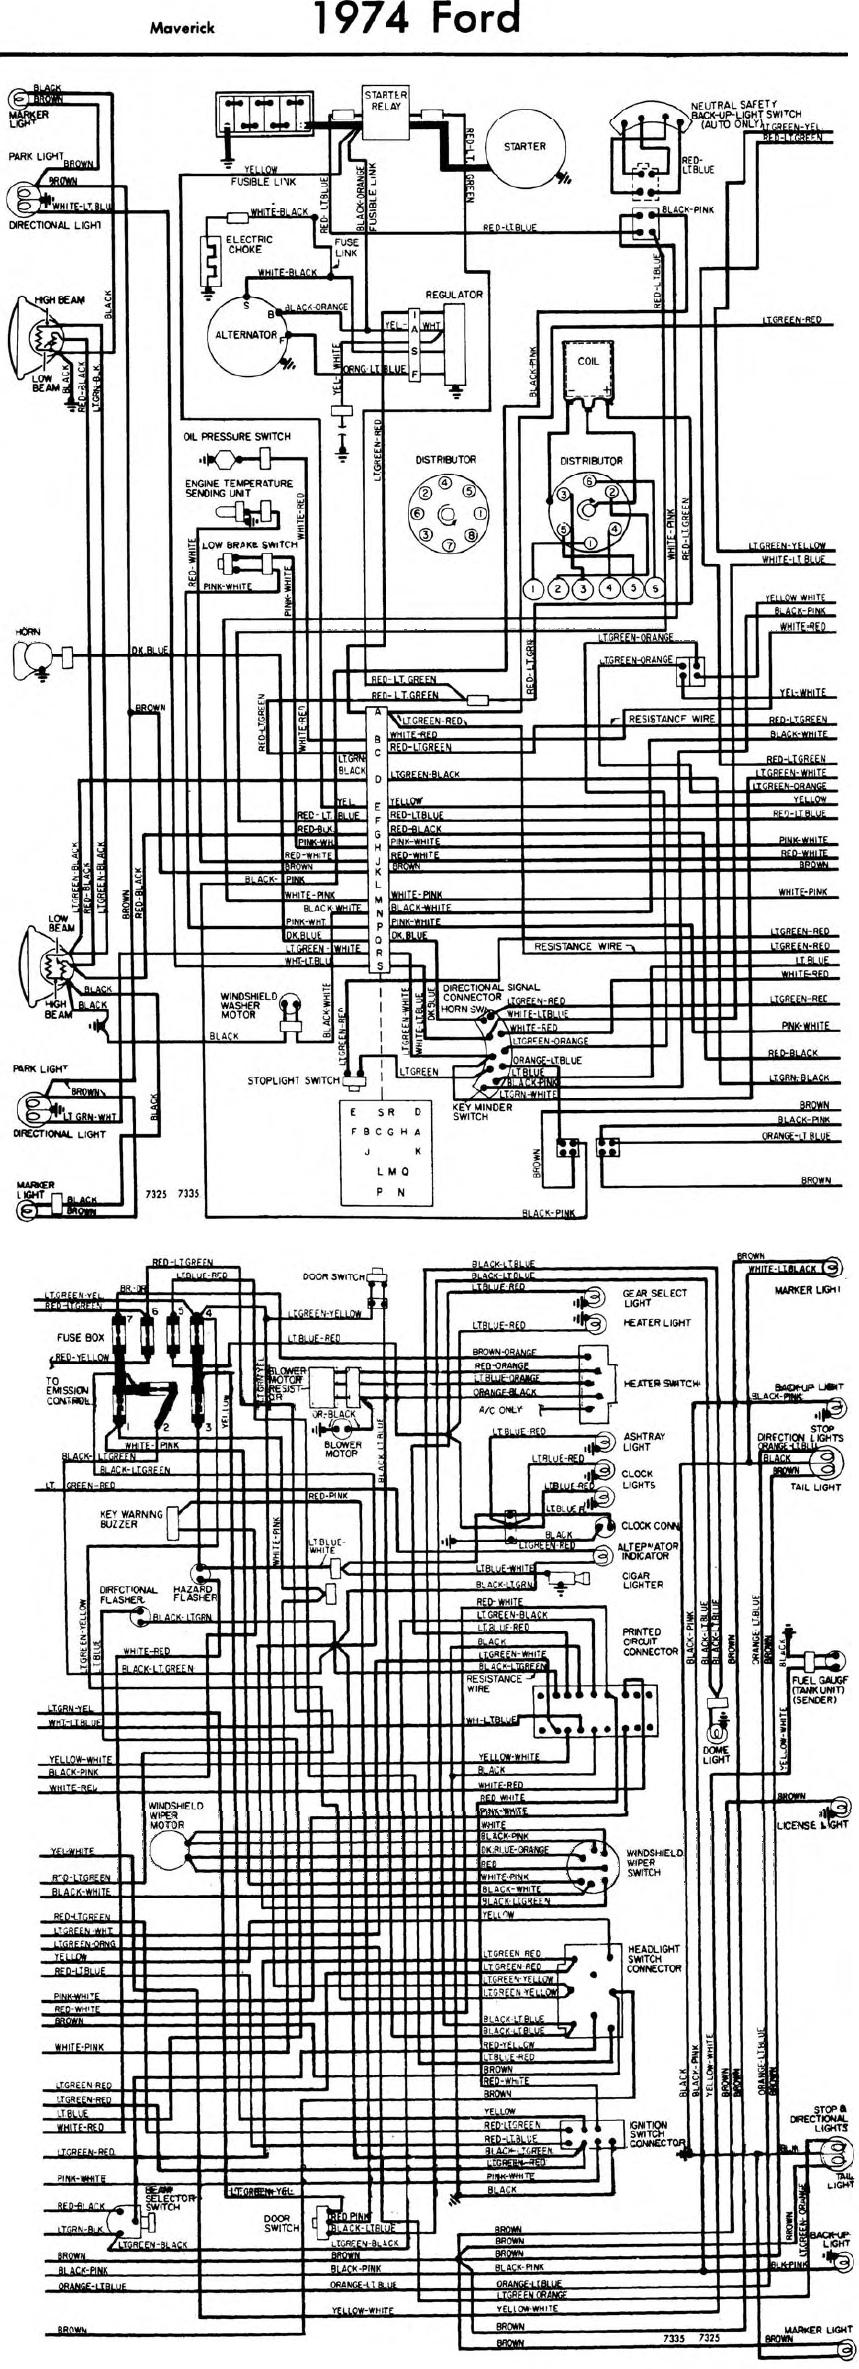 74 maverick wiring schematic maverick comet forums rh mmb maverick to ford  maverick radio wiring diagram ford maverick alternator wiring